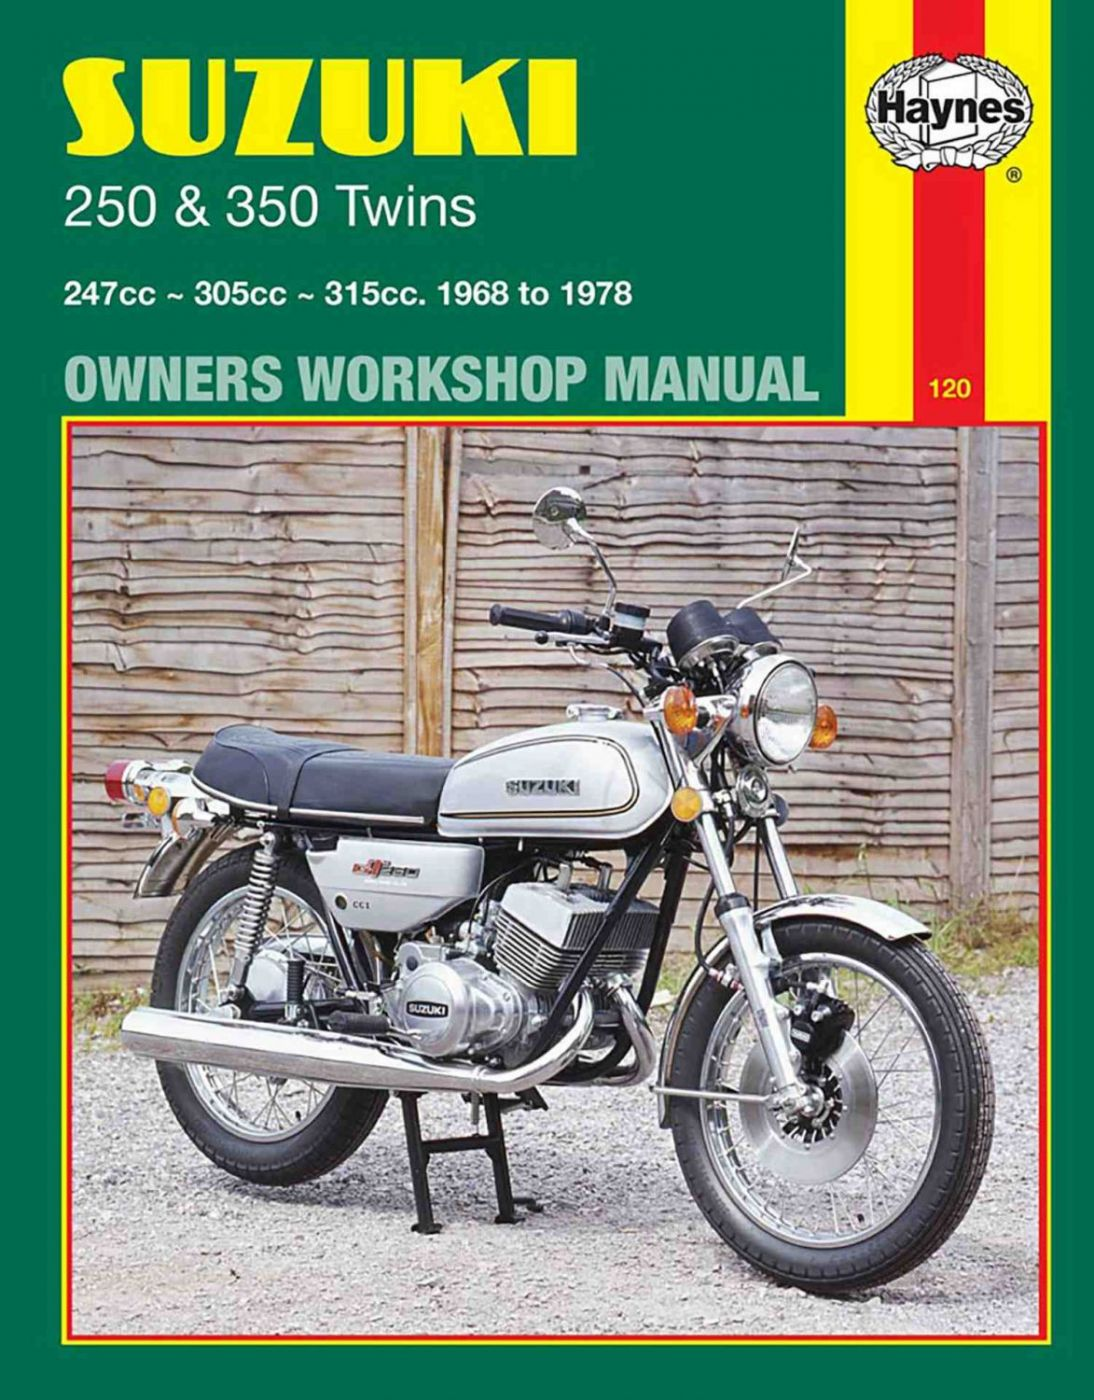 Haynes Manuals - 680120Y image